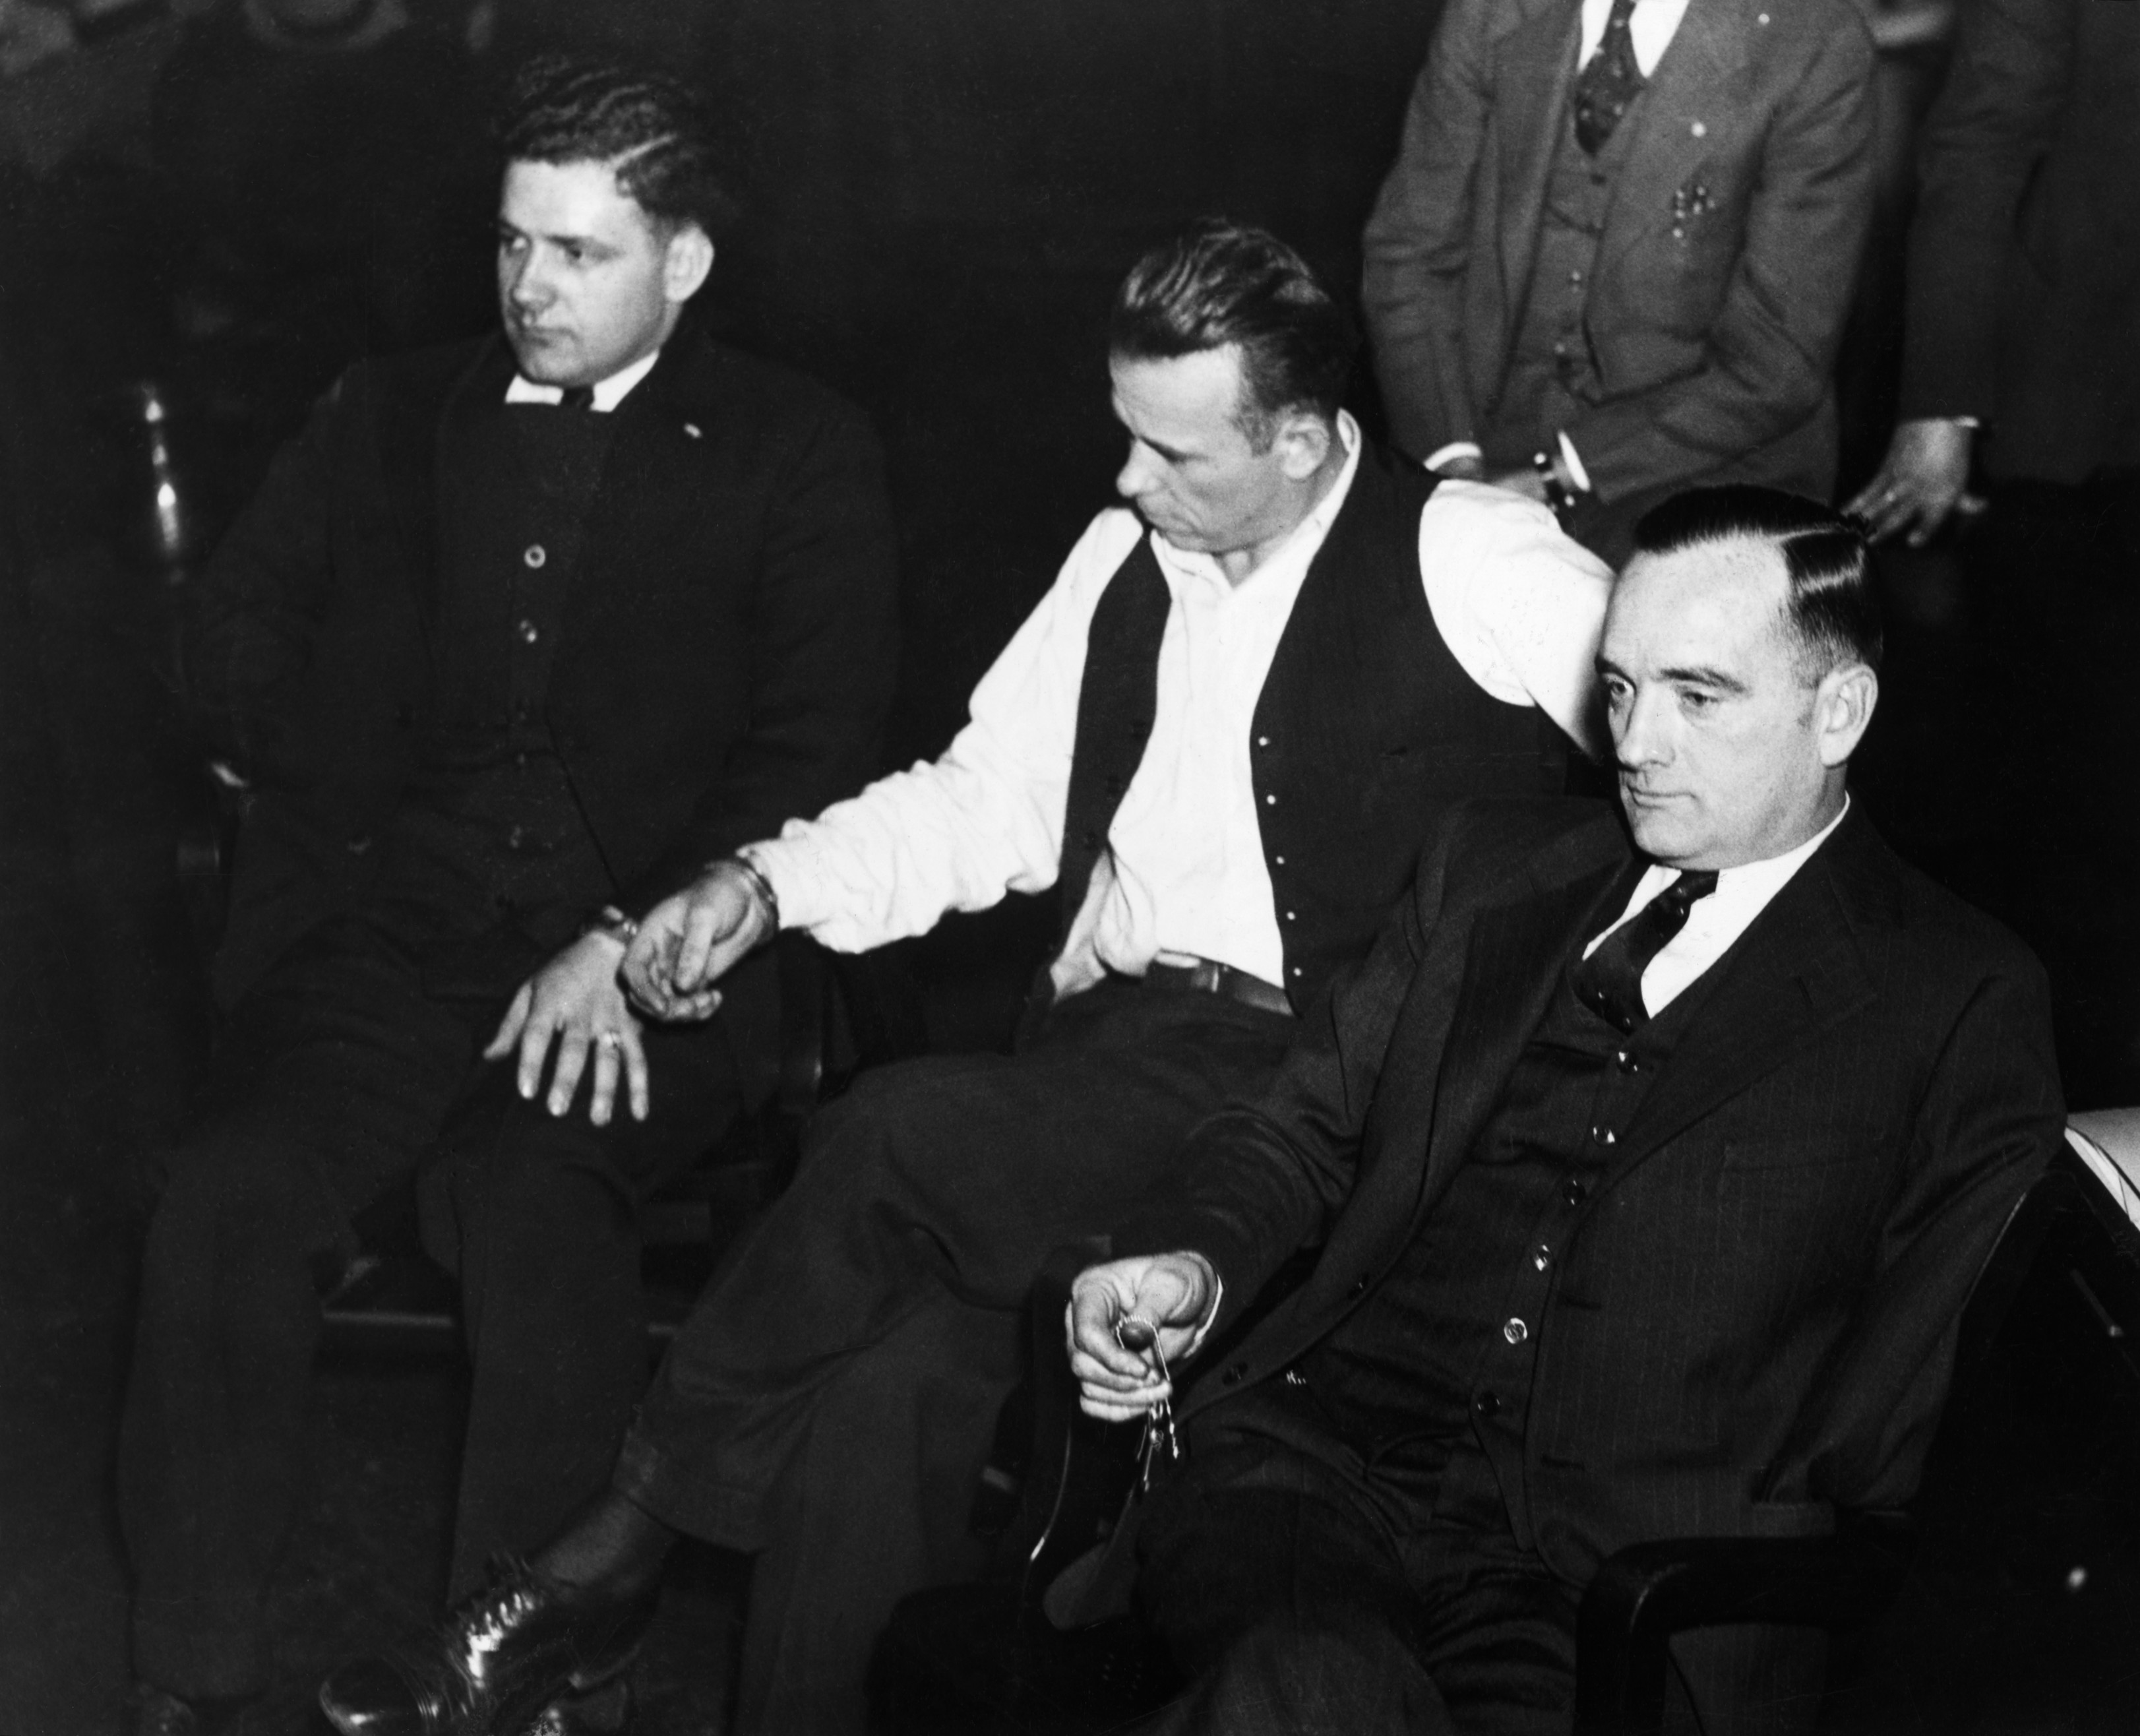 ca.1933, Indiana, USA --- Original caption: IN-John Dillinger, notorius criminal in Indiana court, manacled to Sheriff Holley. At right is attorney Joseph Ryan. Photograph. --- Image by © Corbis